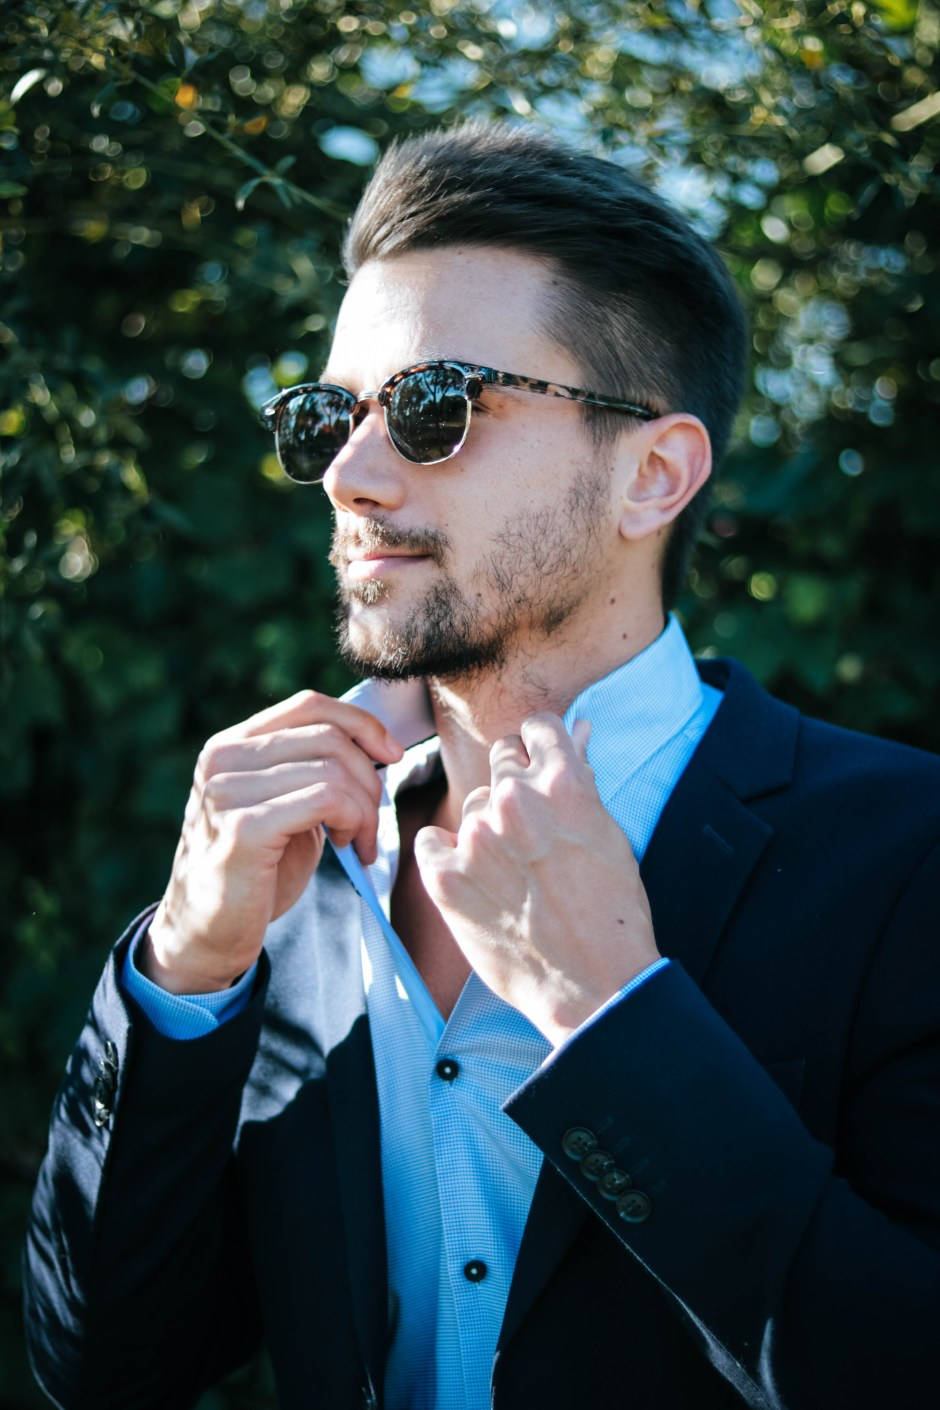 Man in Blue Dress Shirt and Black Formal Suit